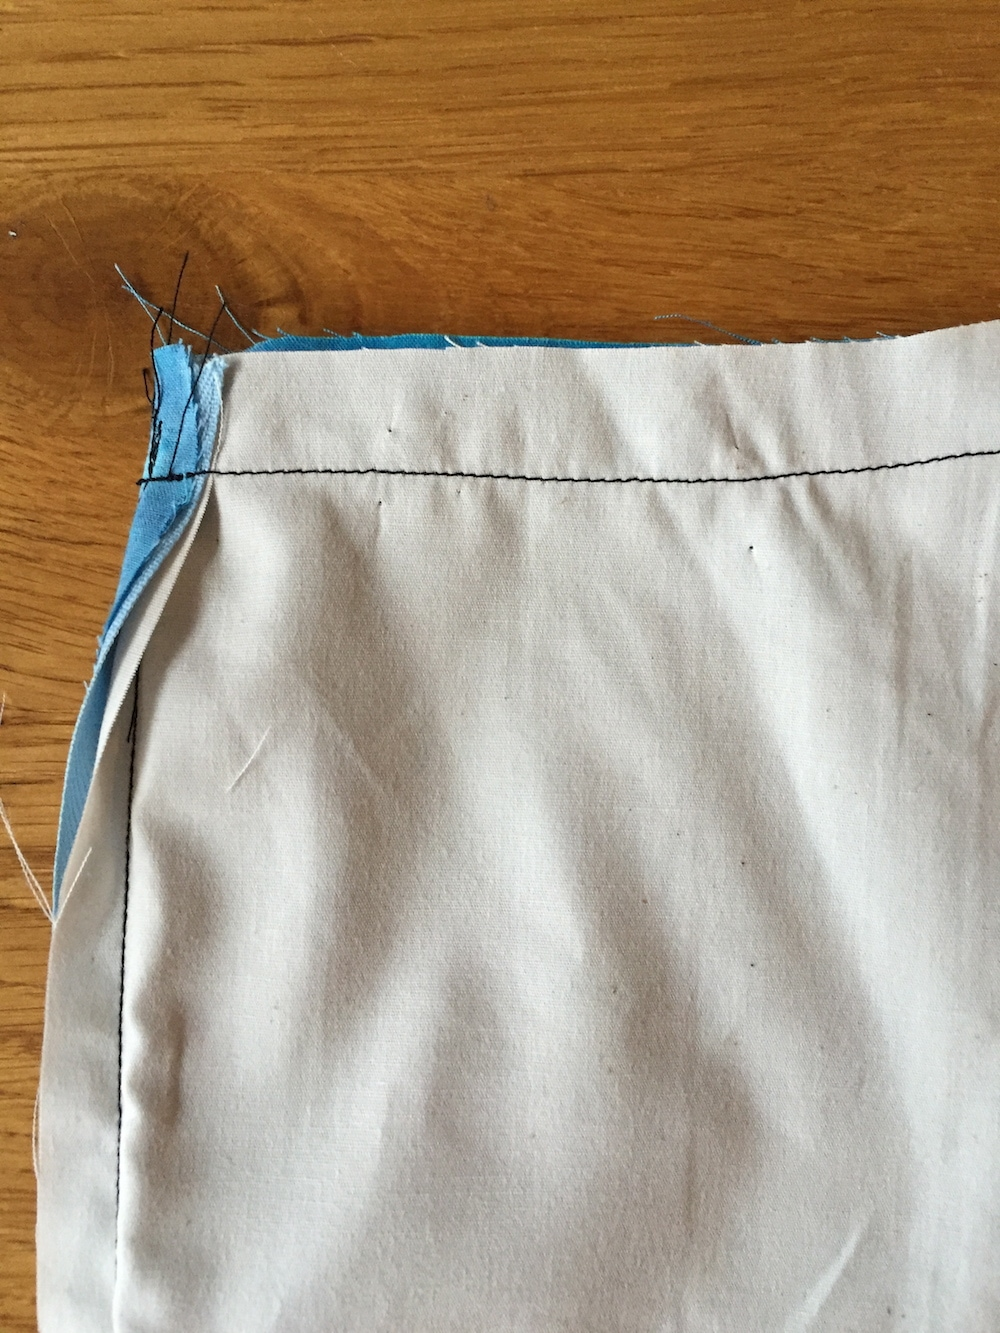 How to sew an invisible zip with a lining tutorial 5.jpg